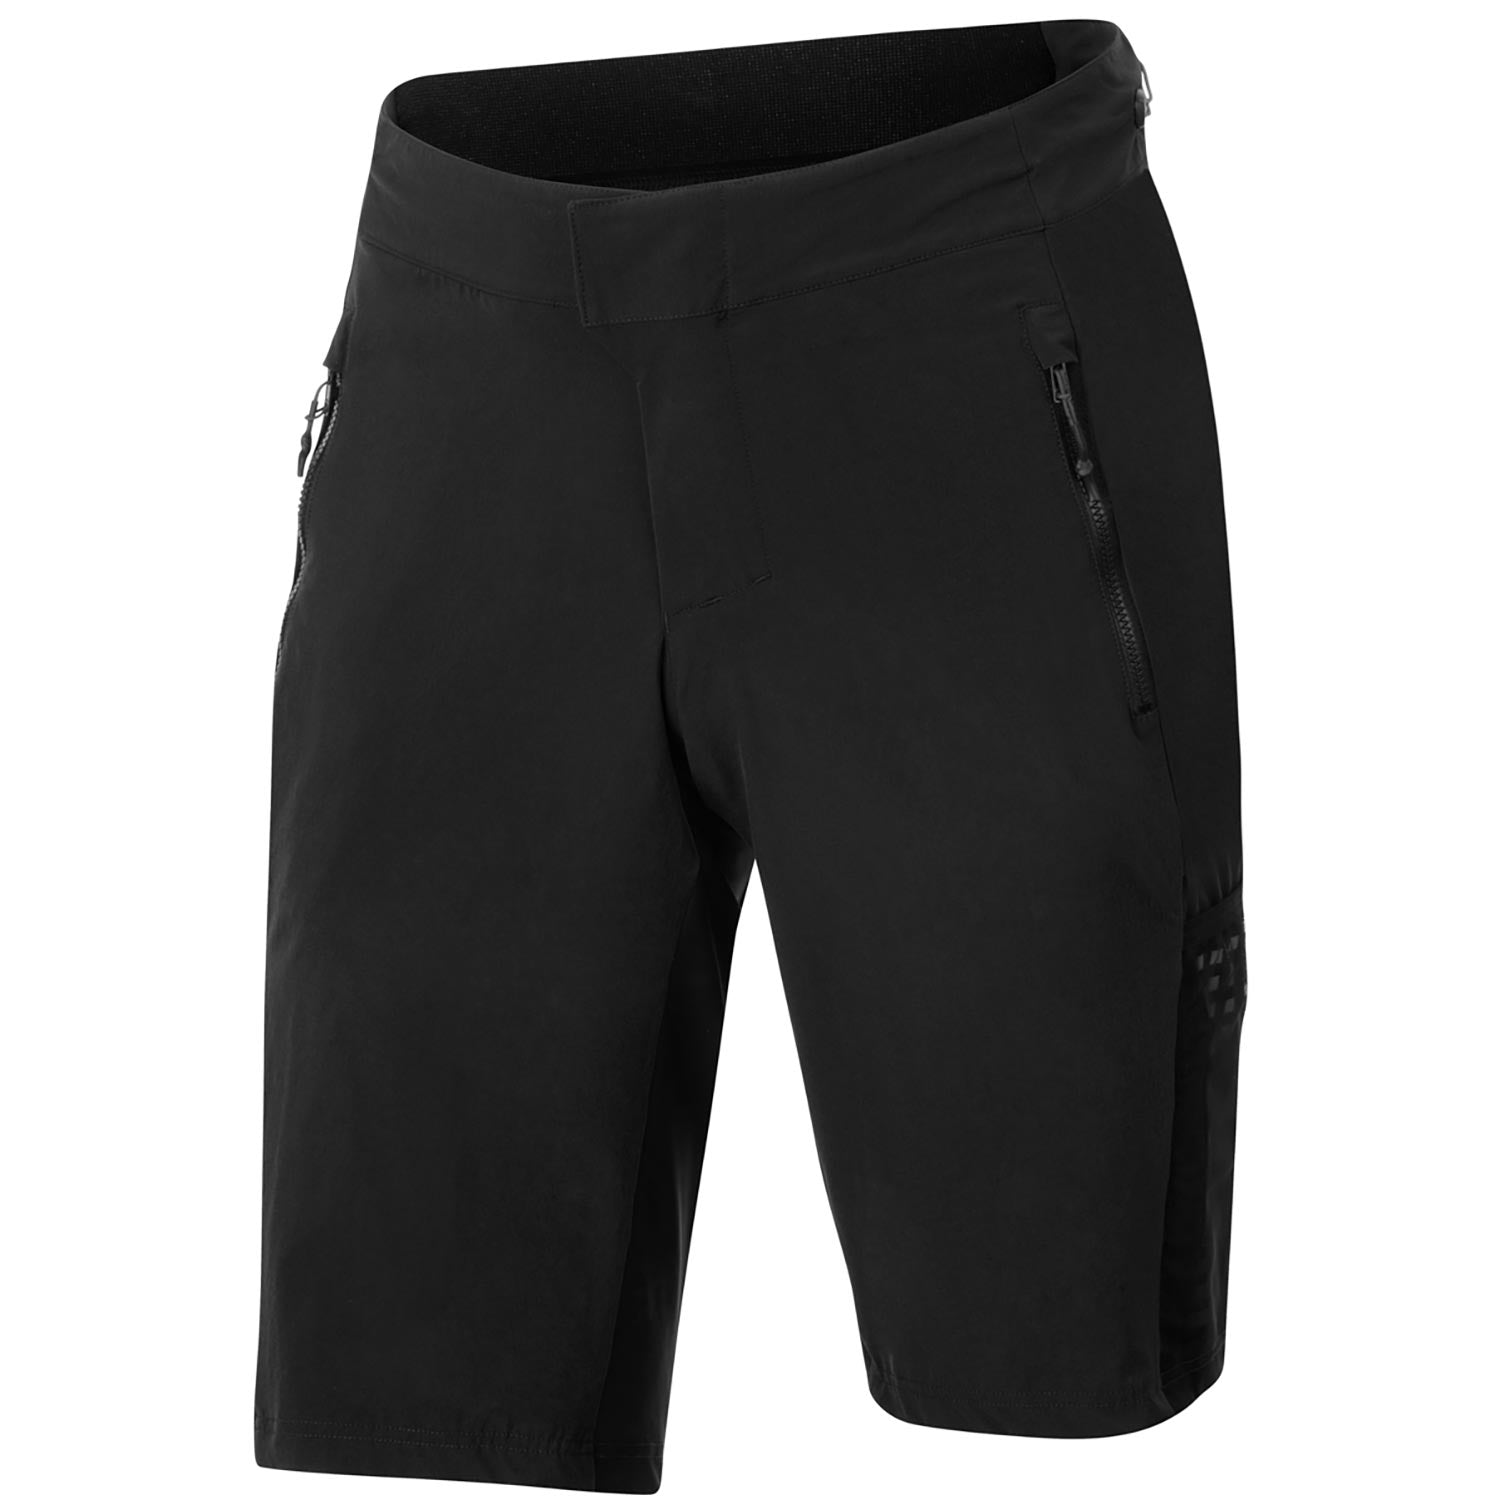 Sportful-Sportful Supergiara Overshorts-Black-S-SF205070022-saddleback-elite-performance-cycling